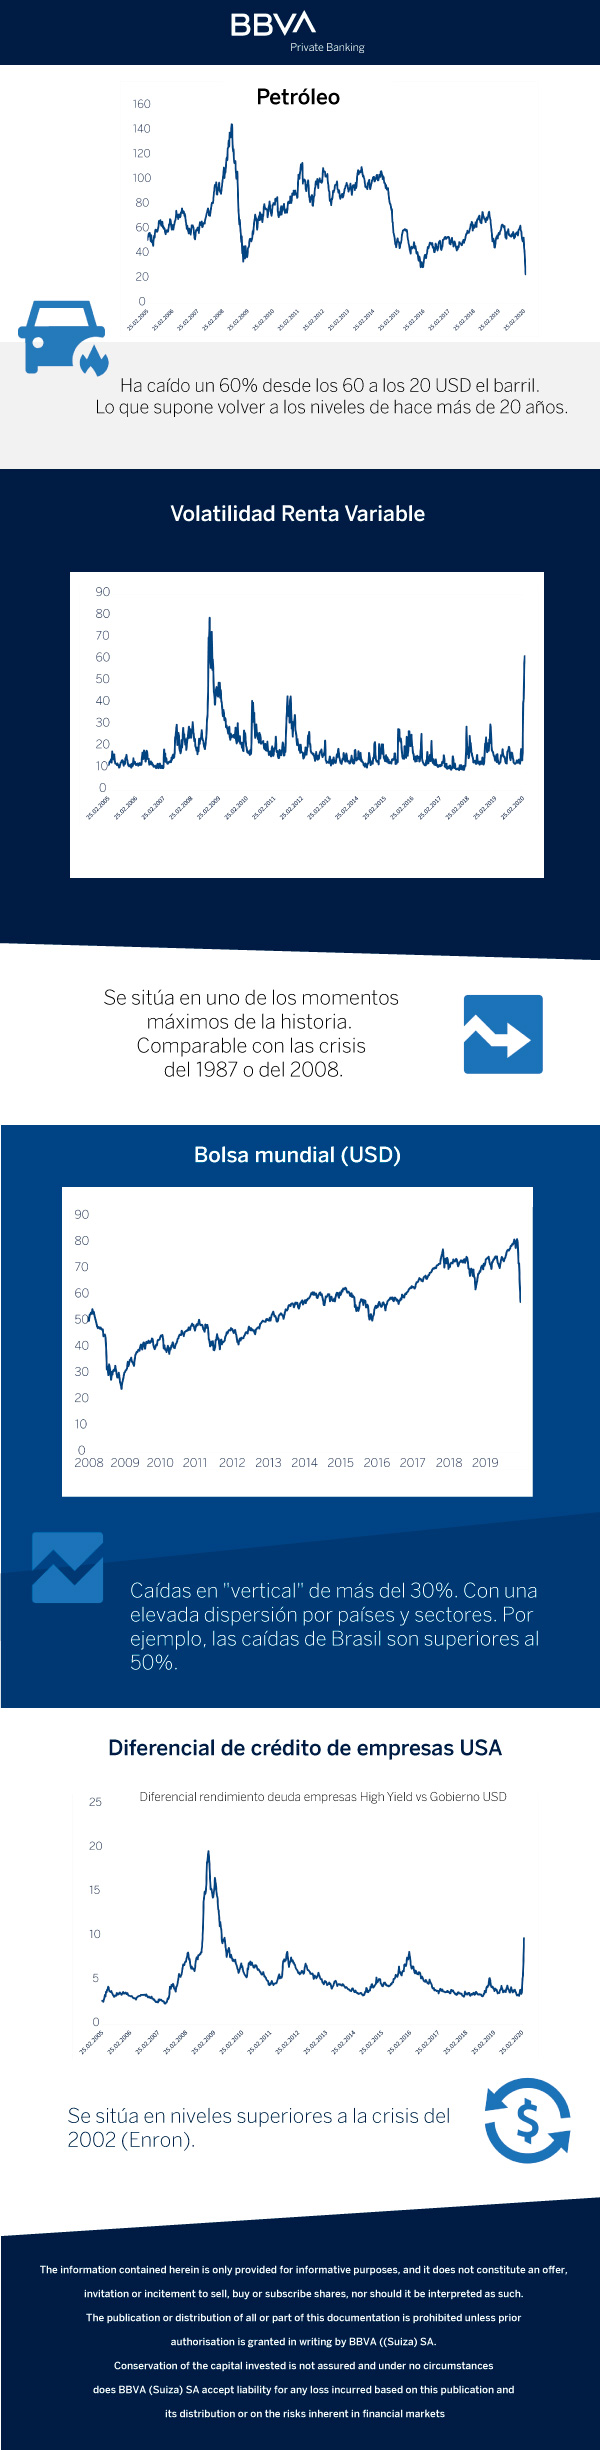 CORONAVIRUS BOLSA STOCK MARKET MATERIAS PRIMAS COMMODITIES